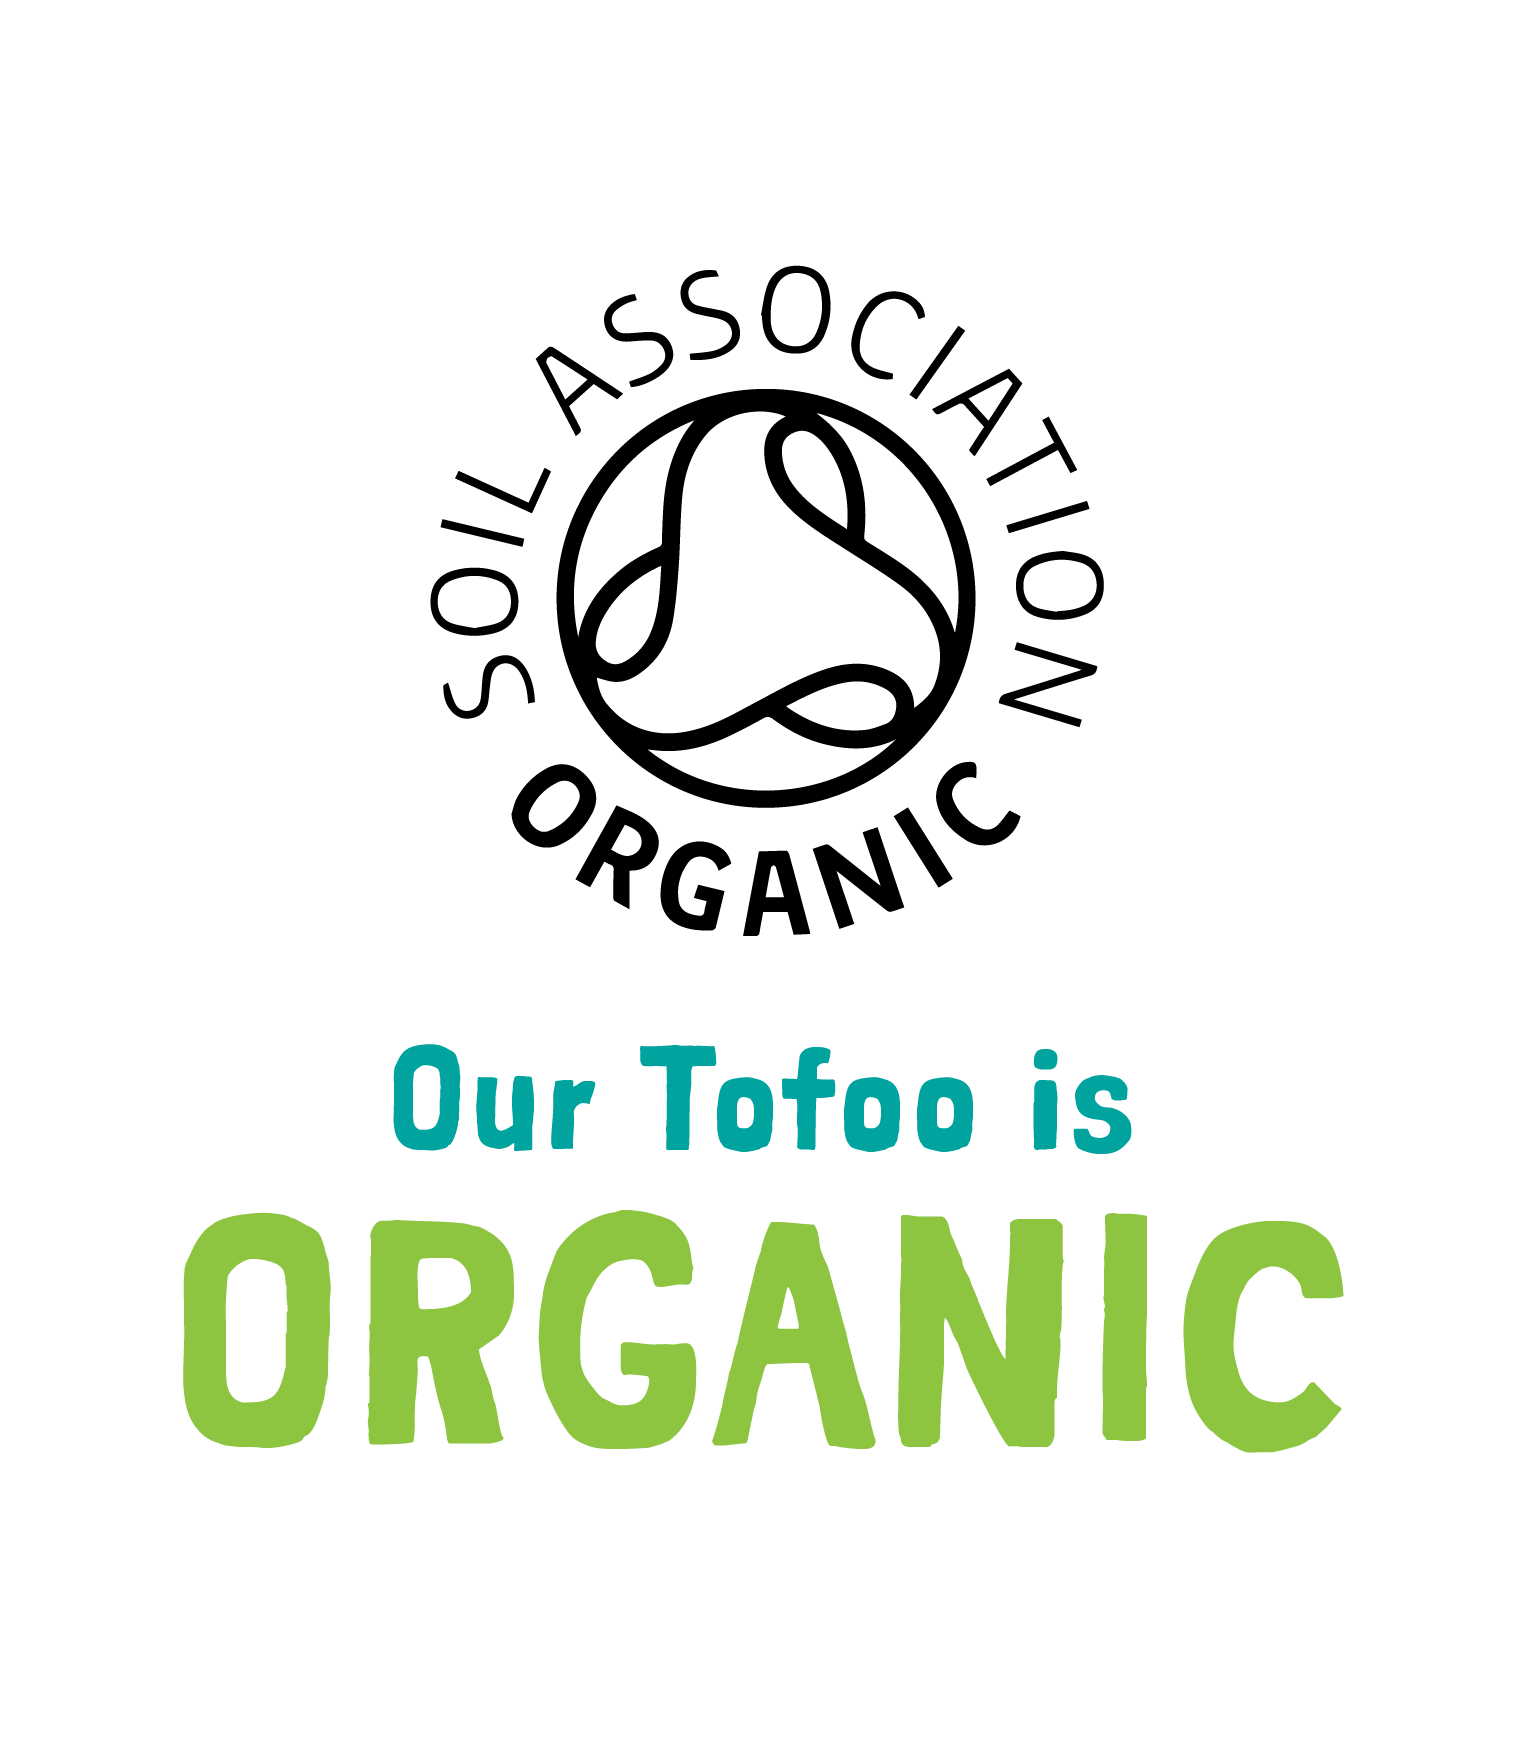 Our tofu is organic